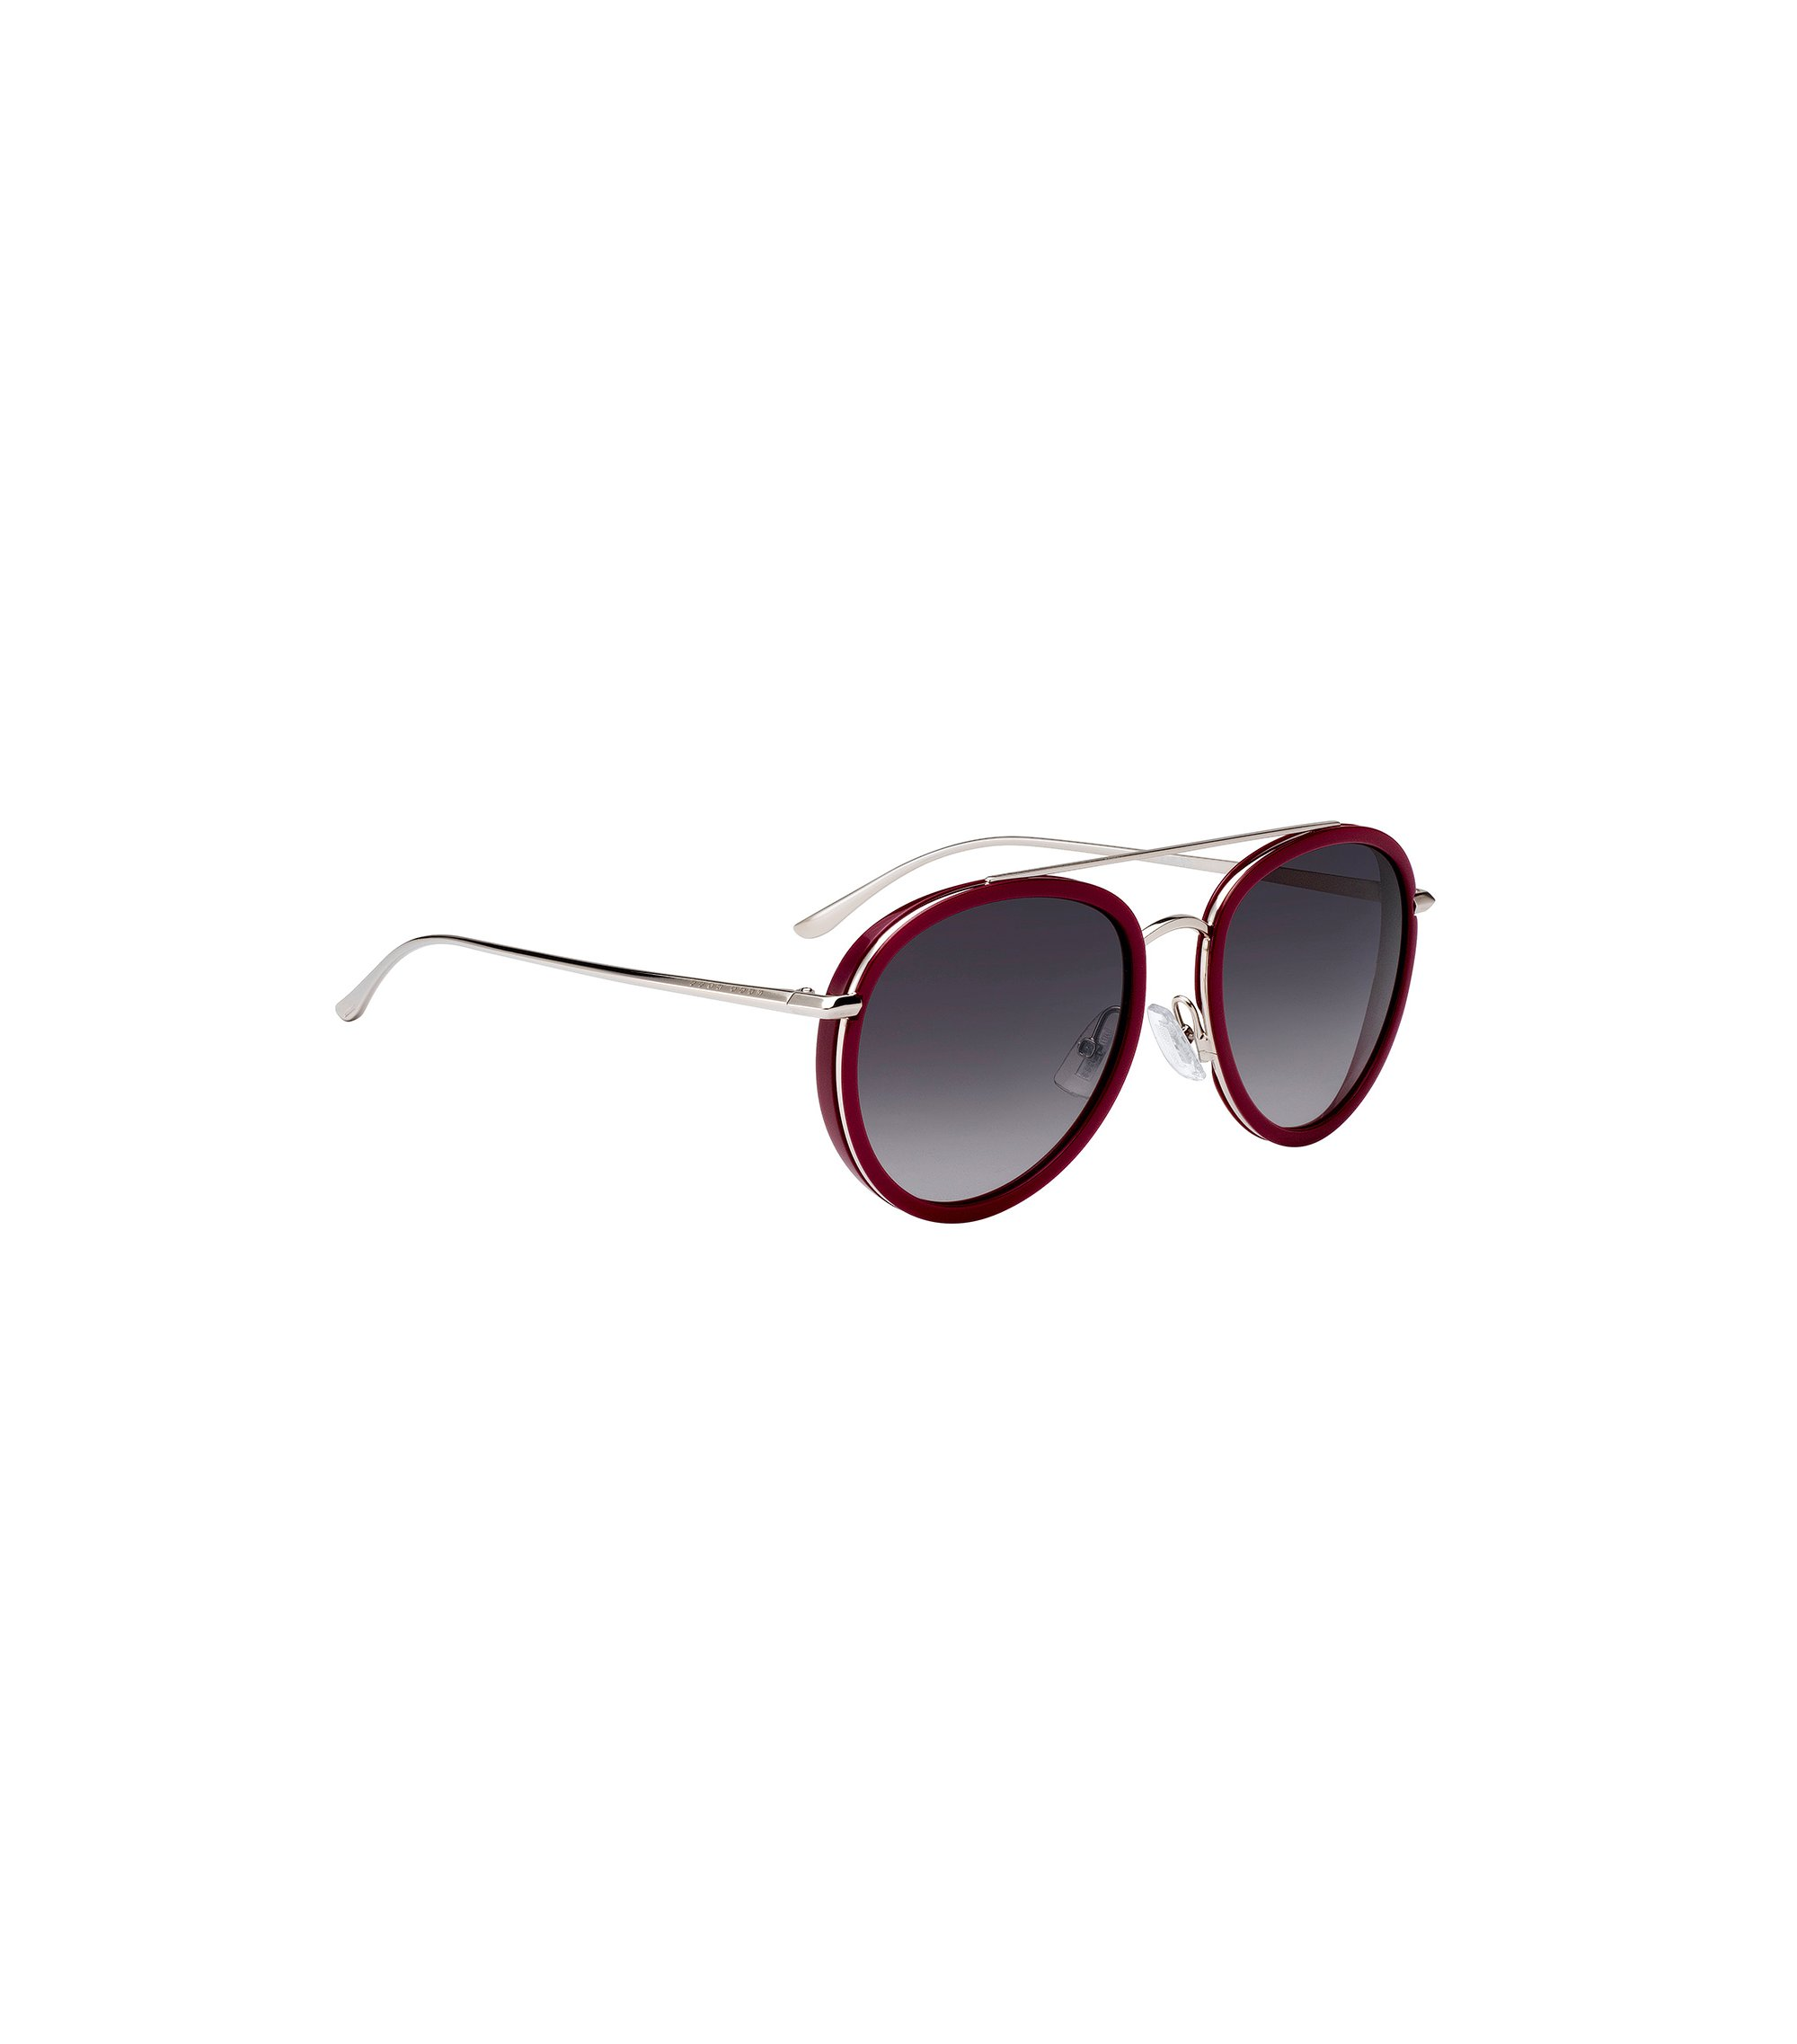 Double-bridge sunglasses in berry acetate, Assorted-Pre-Pack